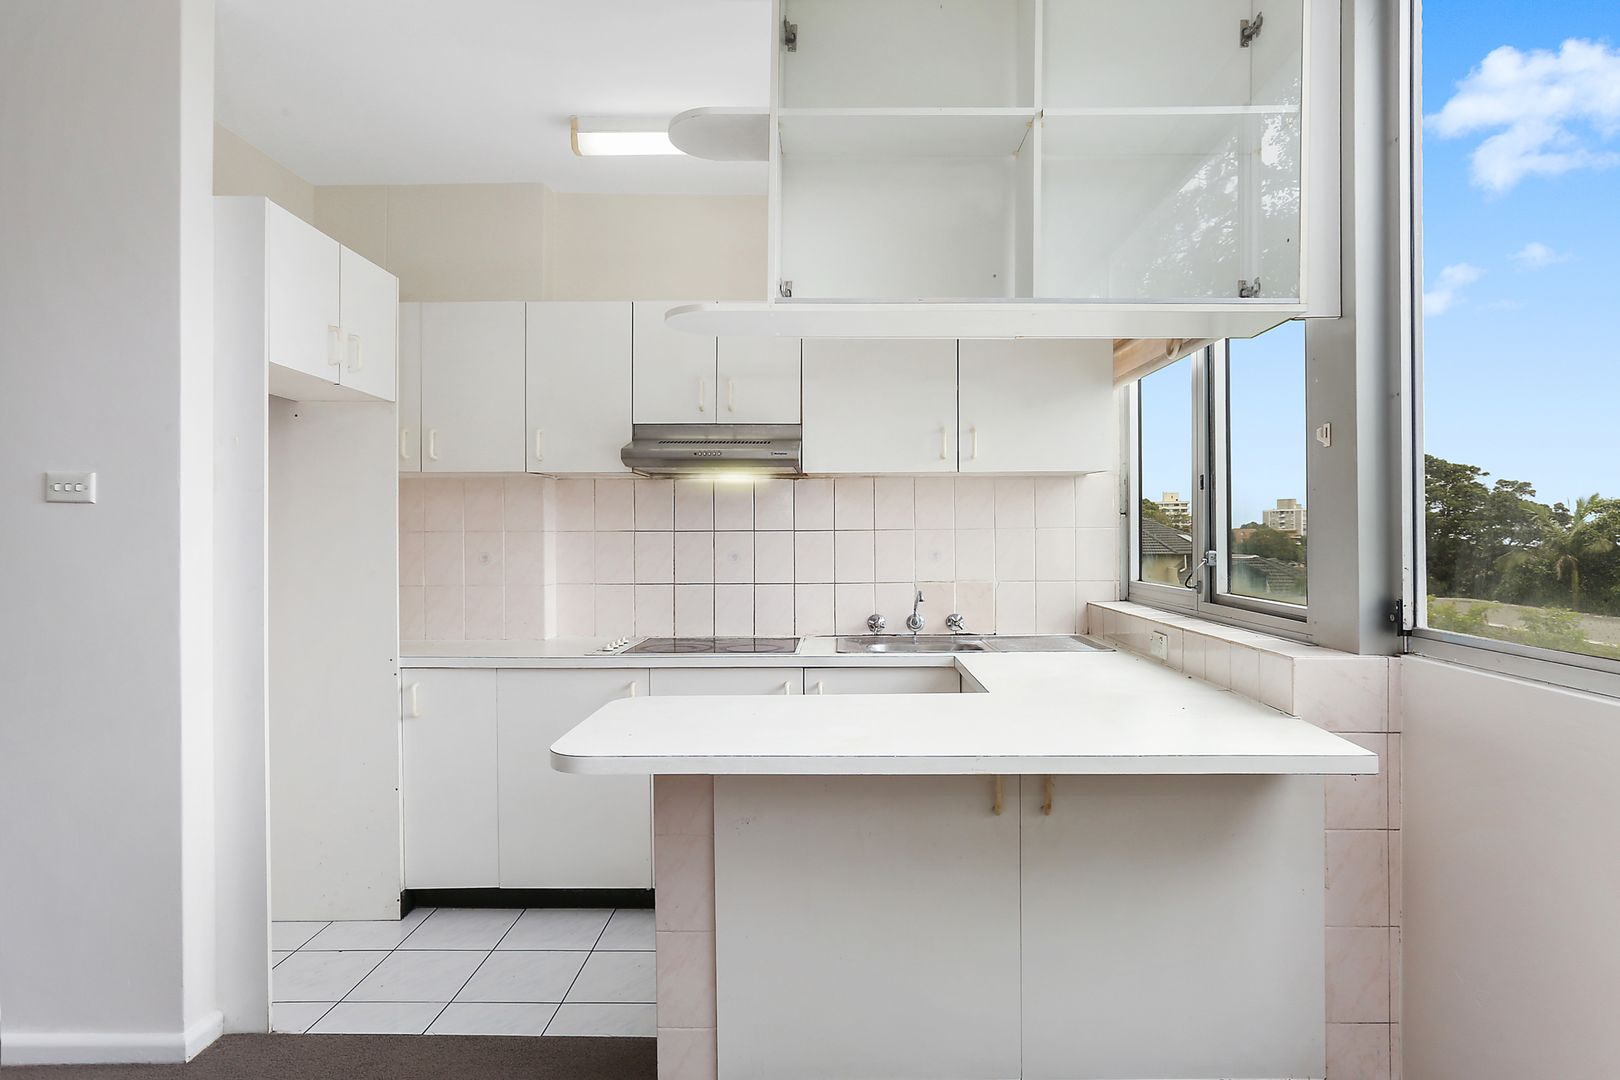 18/441 Alfred Street, Neutral Bay NSW 2089, Image 2